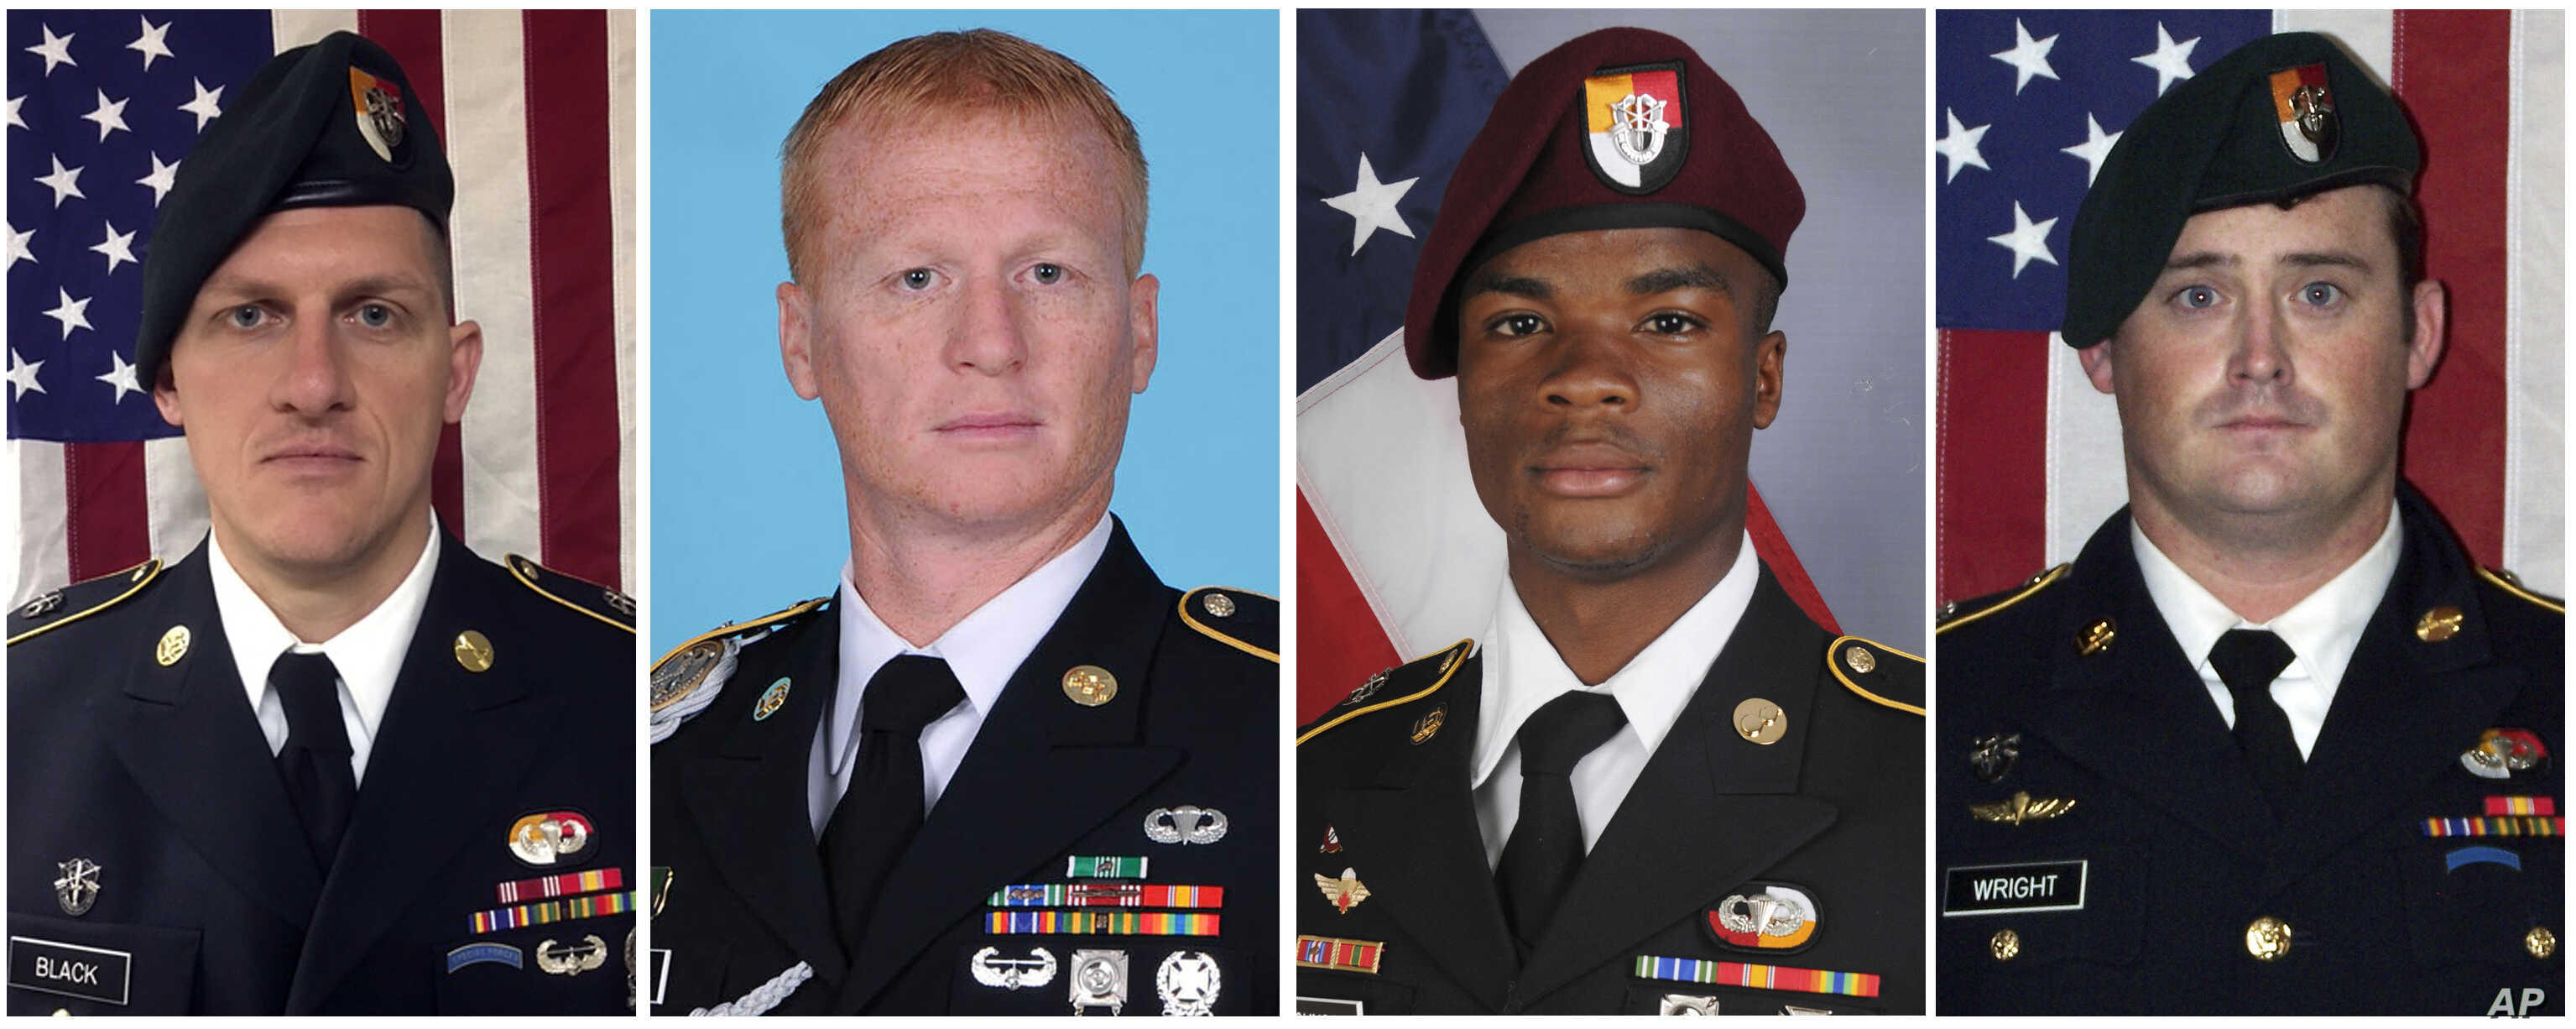 These images provided by the U.S. Army show, from left, Staff Sgt. Bryan C. Black, 35, of Puyallup, Wash.; Staff Sgt. Jeremiah W. Johnson, 39, of Springboro, Ohio; Sgt. La David Johnson of Miami Gardens, Fla.; and Staff Sgt. Dustin M. Wright, 29, of Lyons